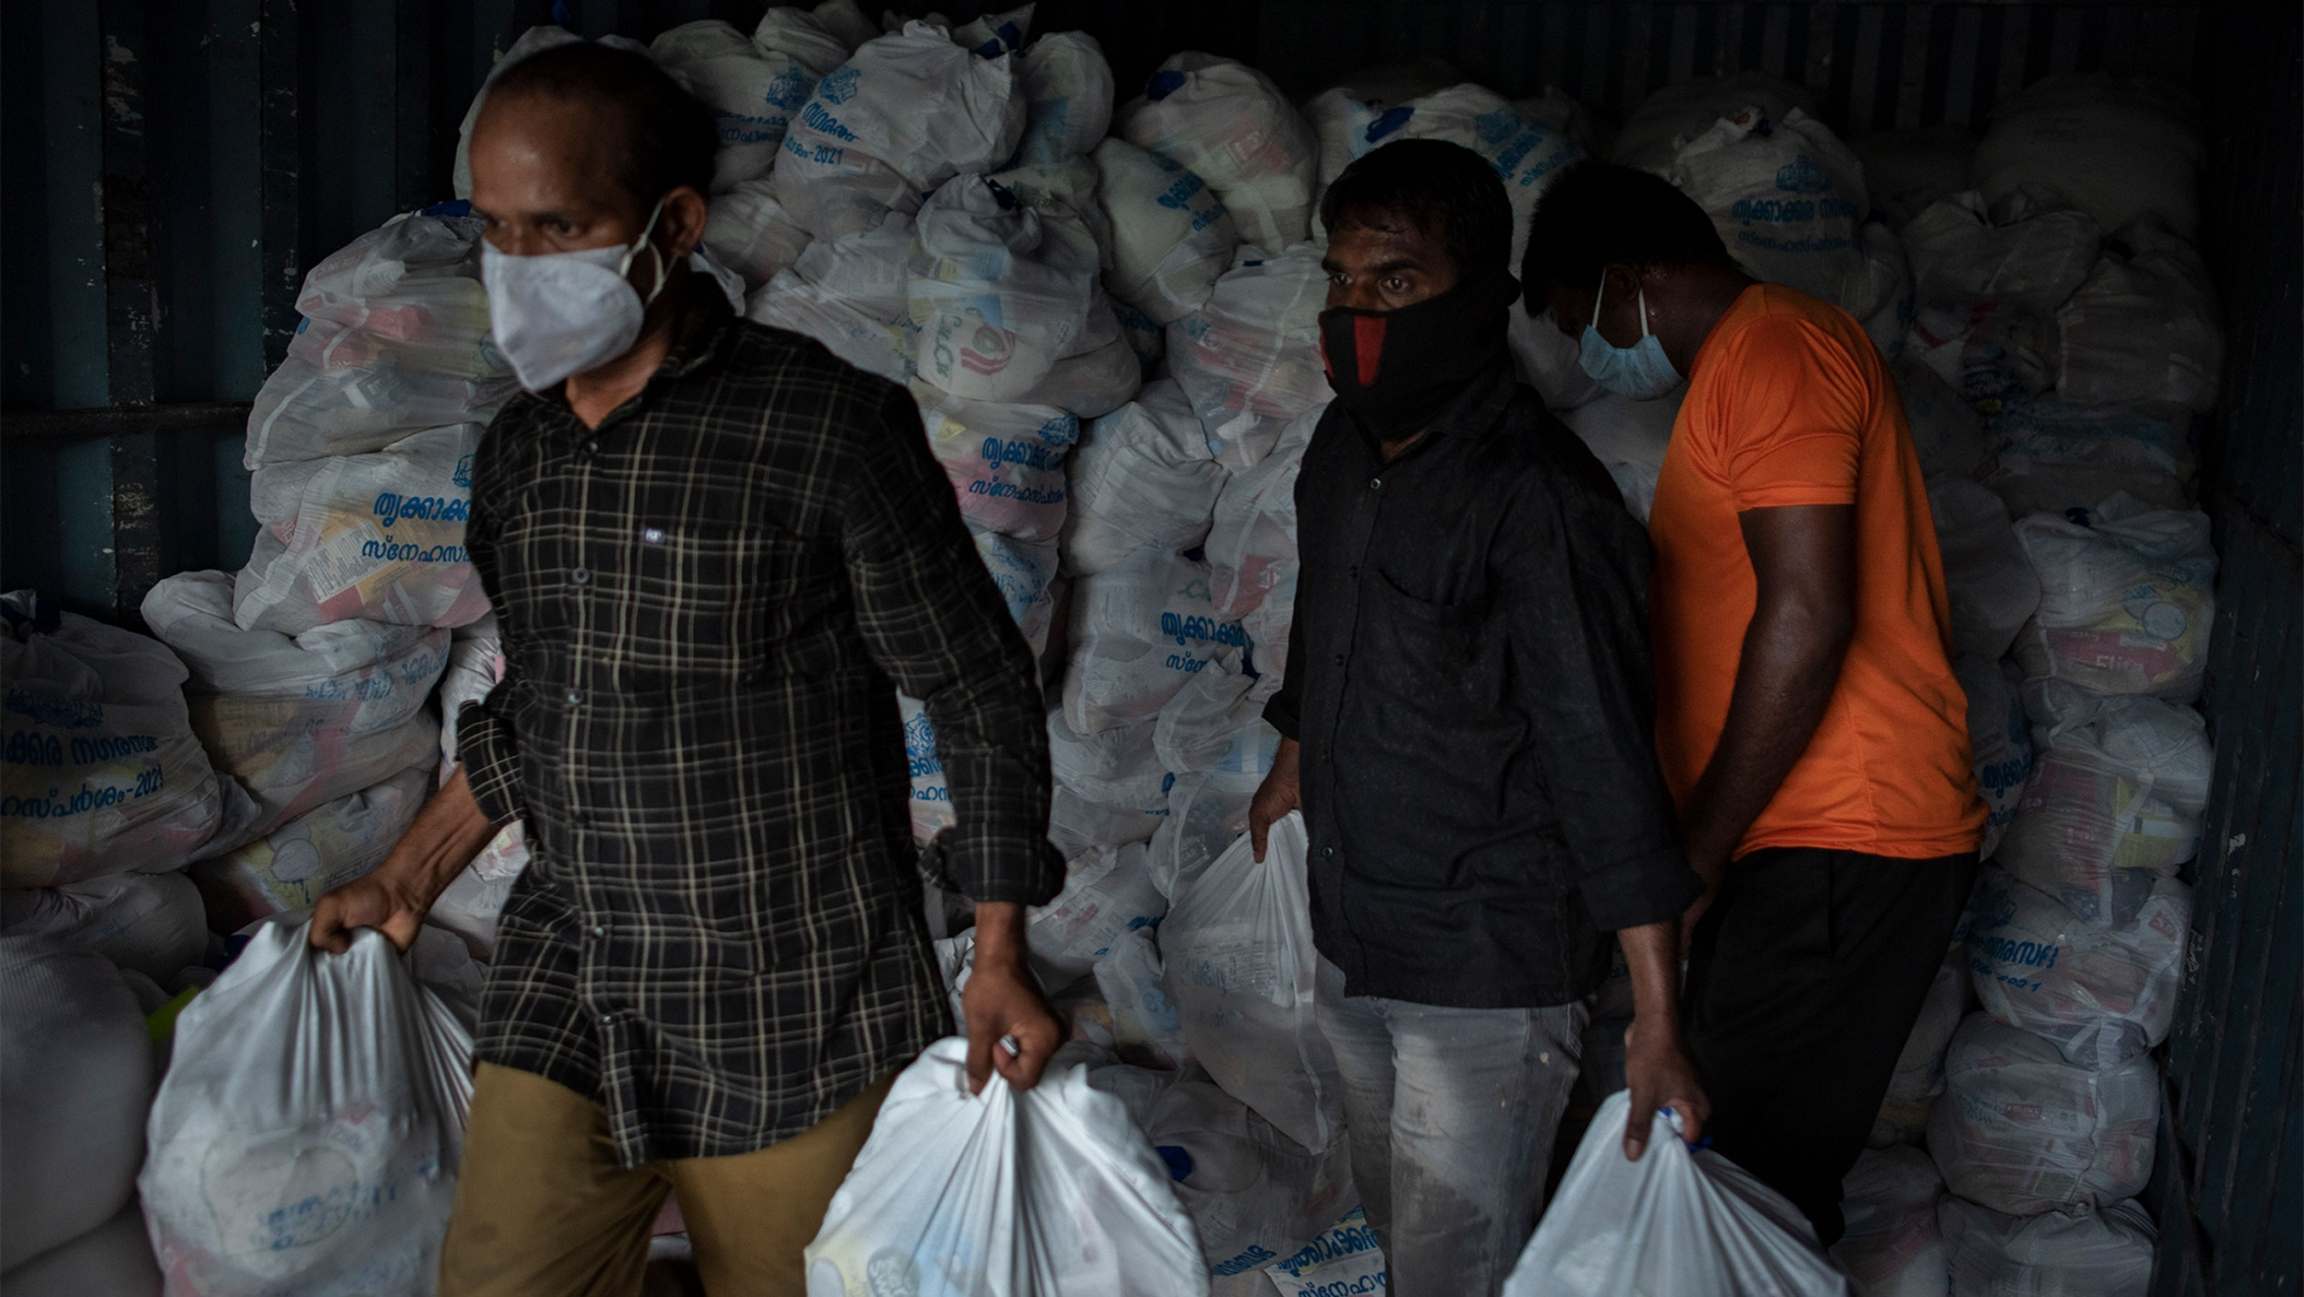 Men carrying white plastic bags of food from a pile of bags